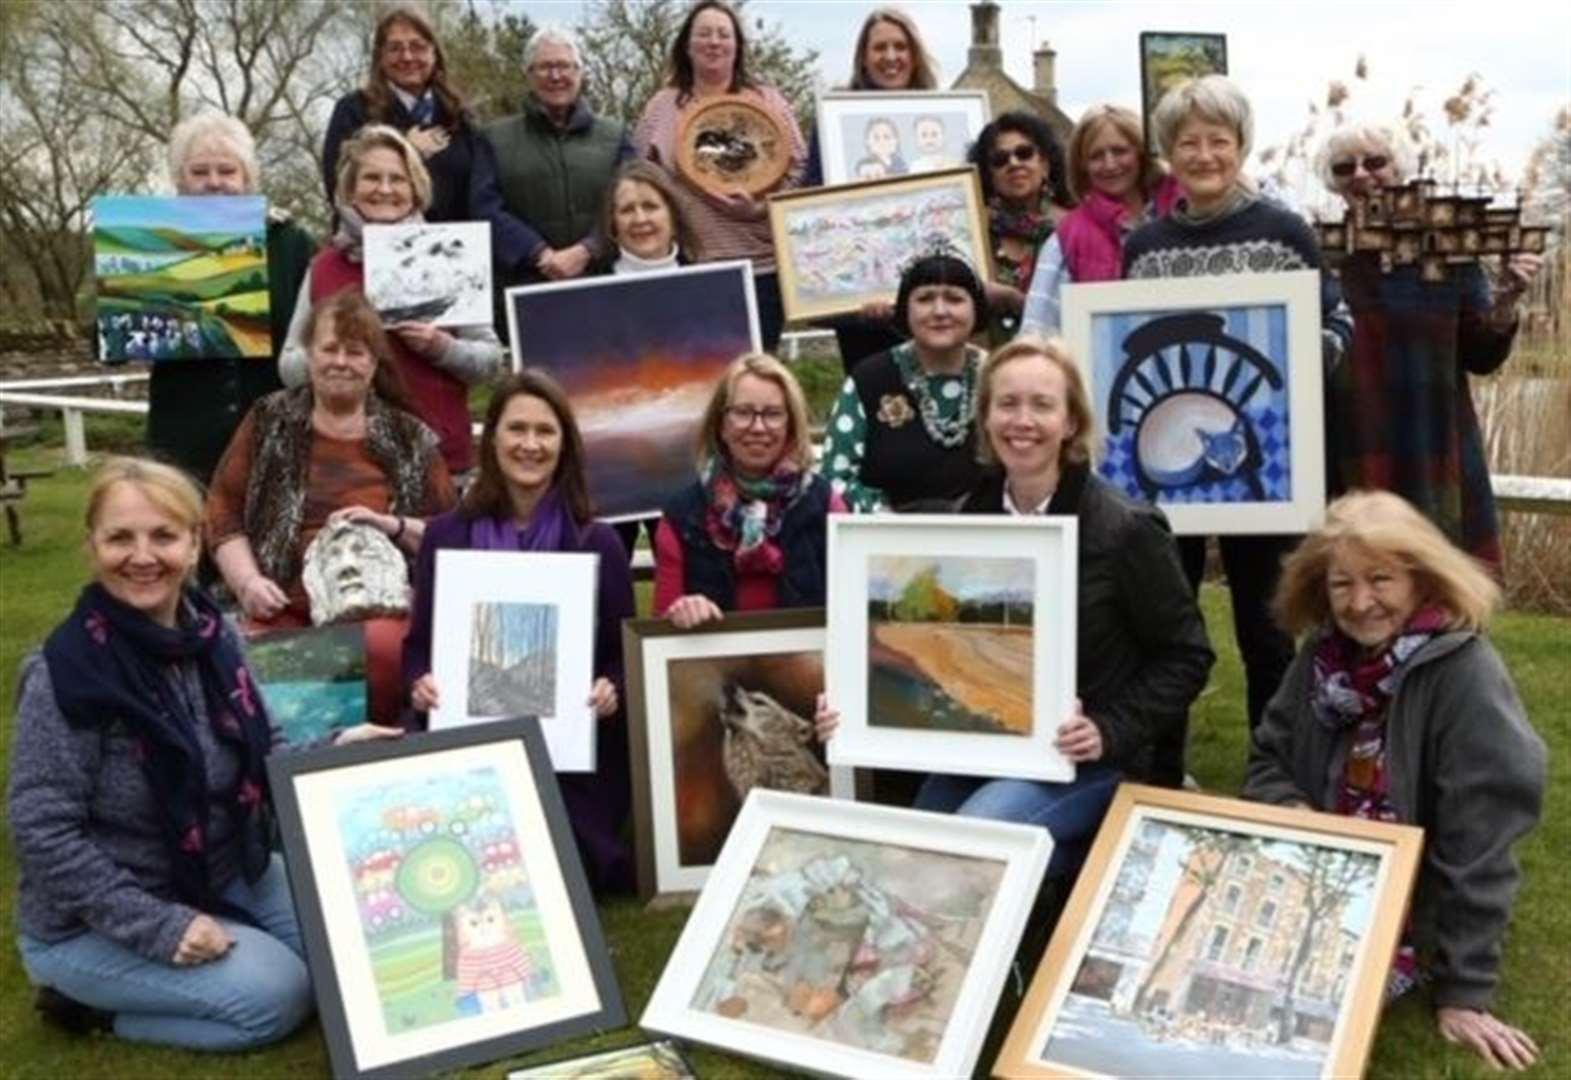 Weekend art exhibition gets underway